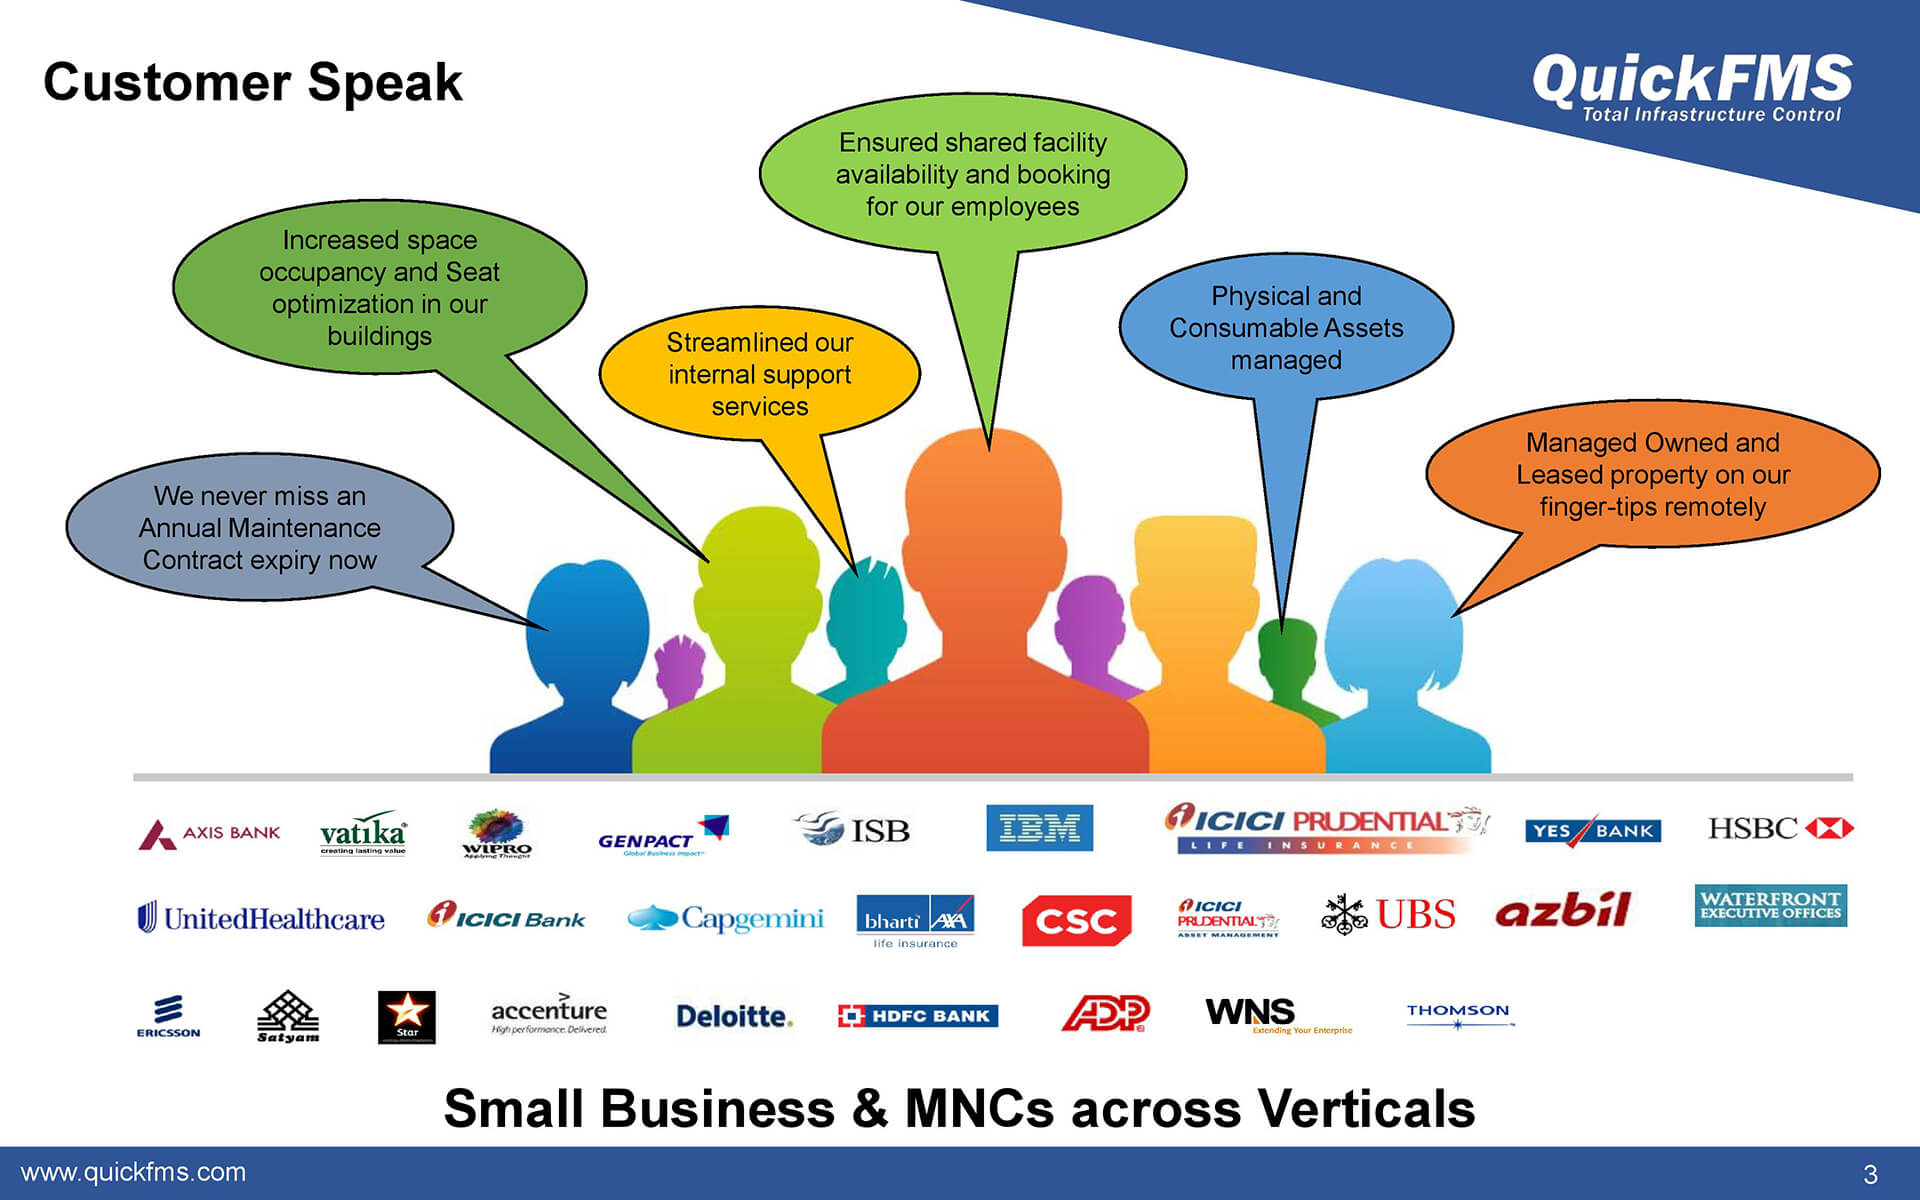 Overview presentation on Customer Speak - QuickFMS